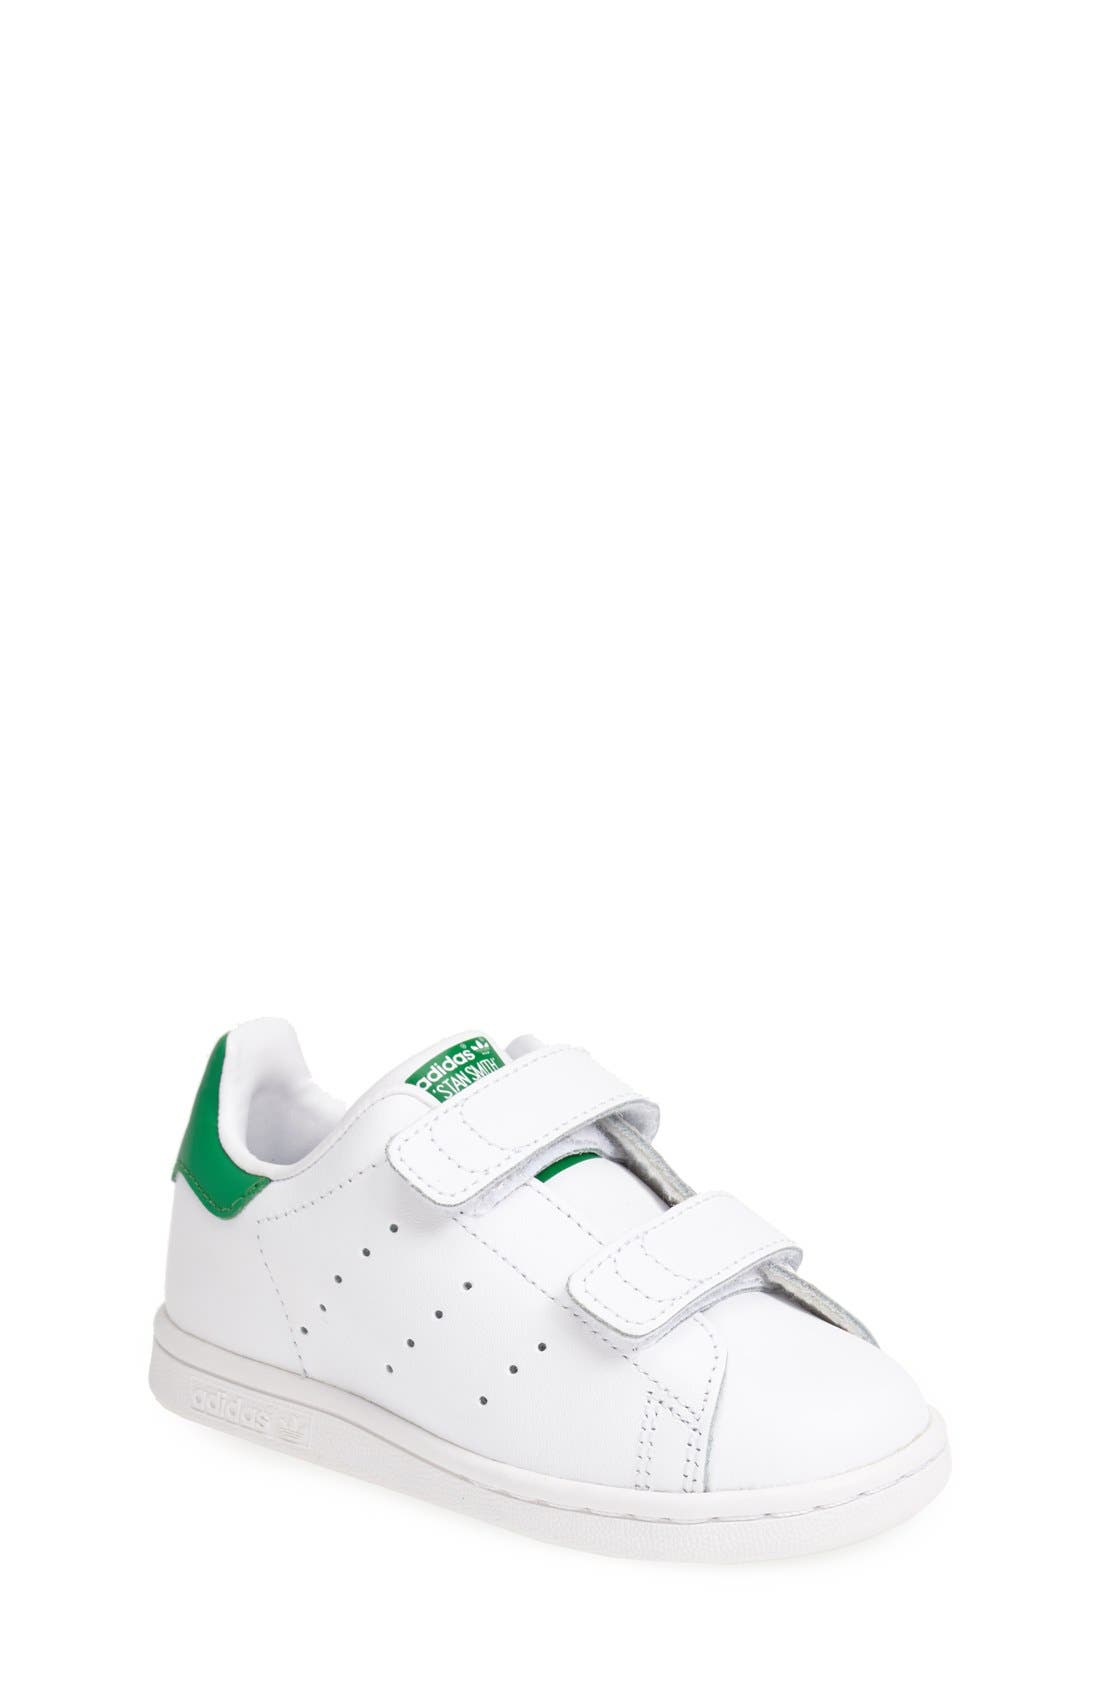 black leather adidas trainers for kids